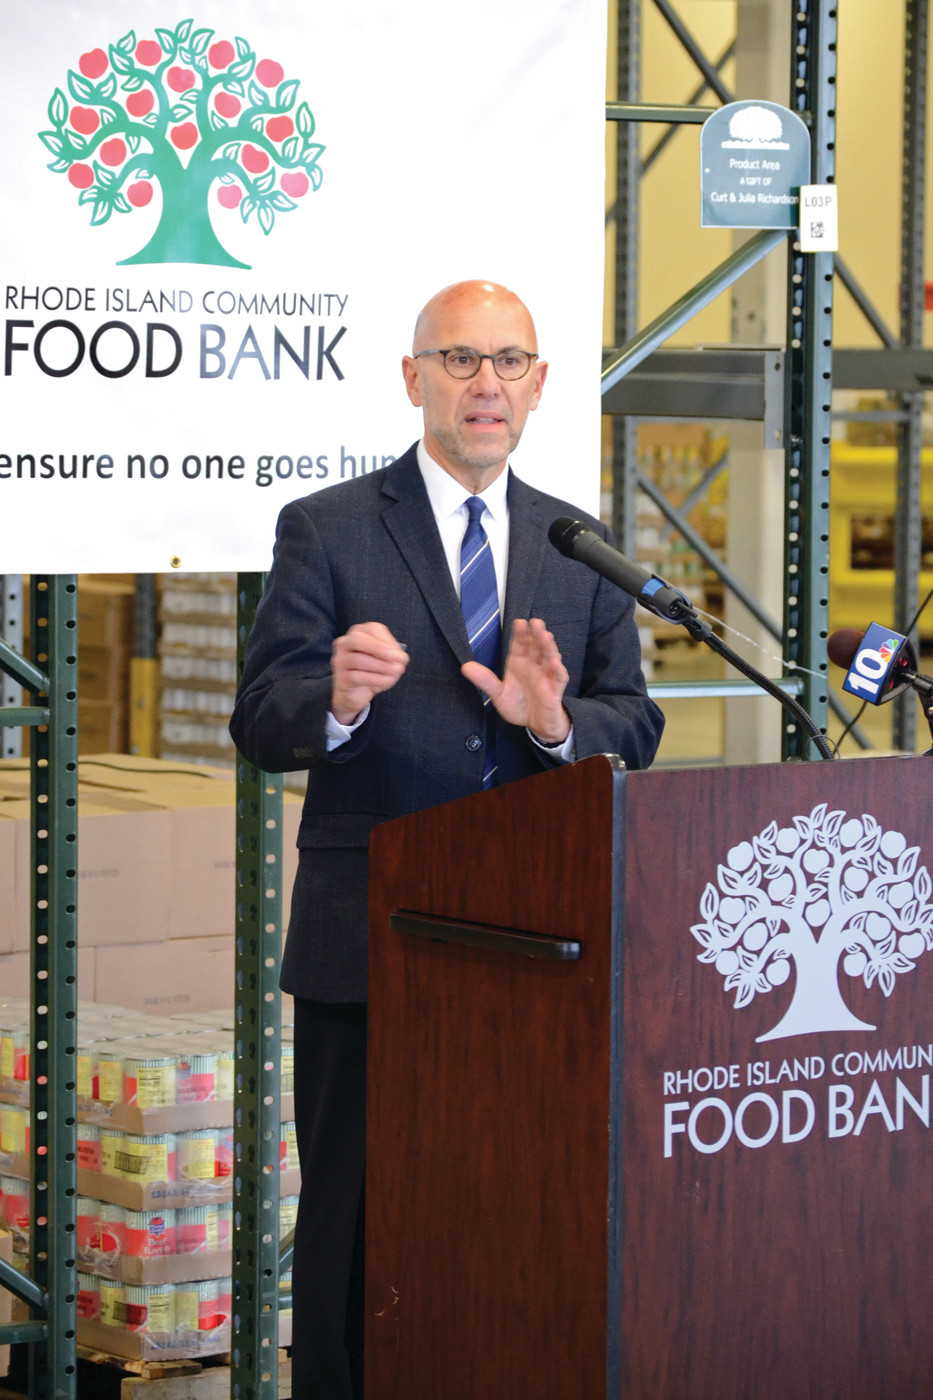 GIVING THE DETAILS: Andrew Schiff, executive director of the Rhode Island Community Food Bank. (Warwick Beacon photo)